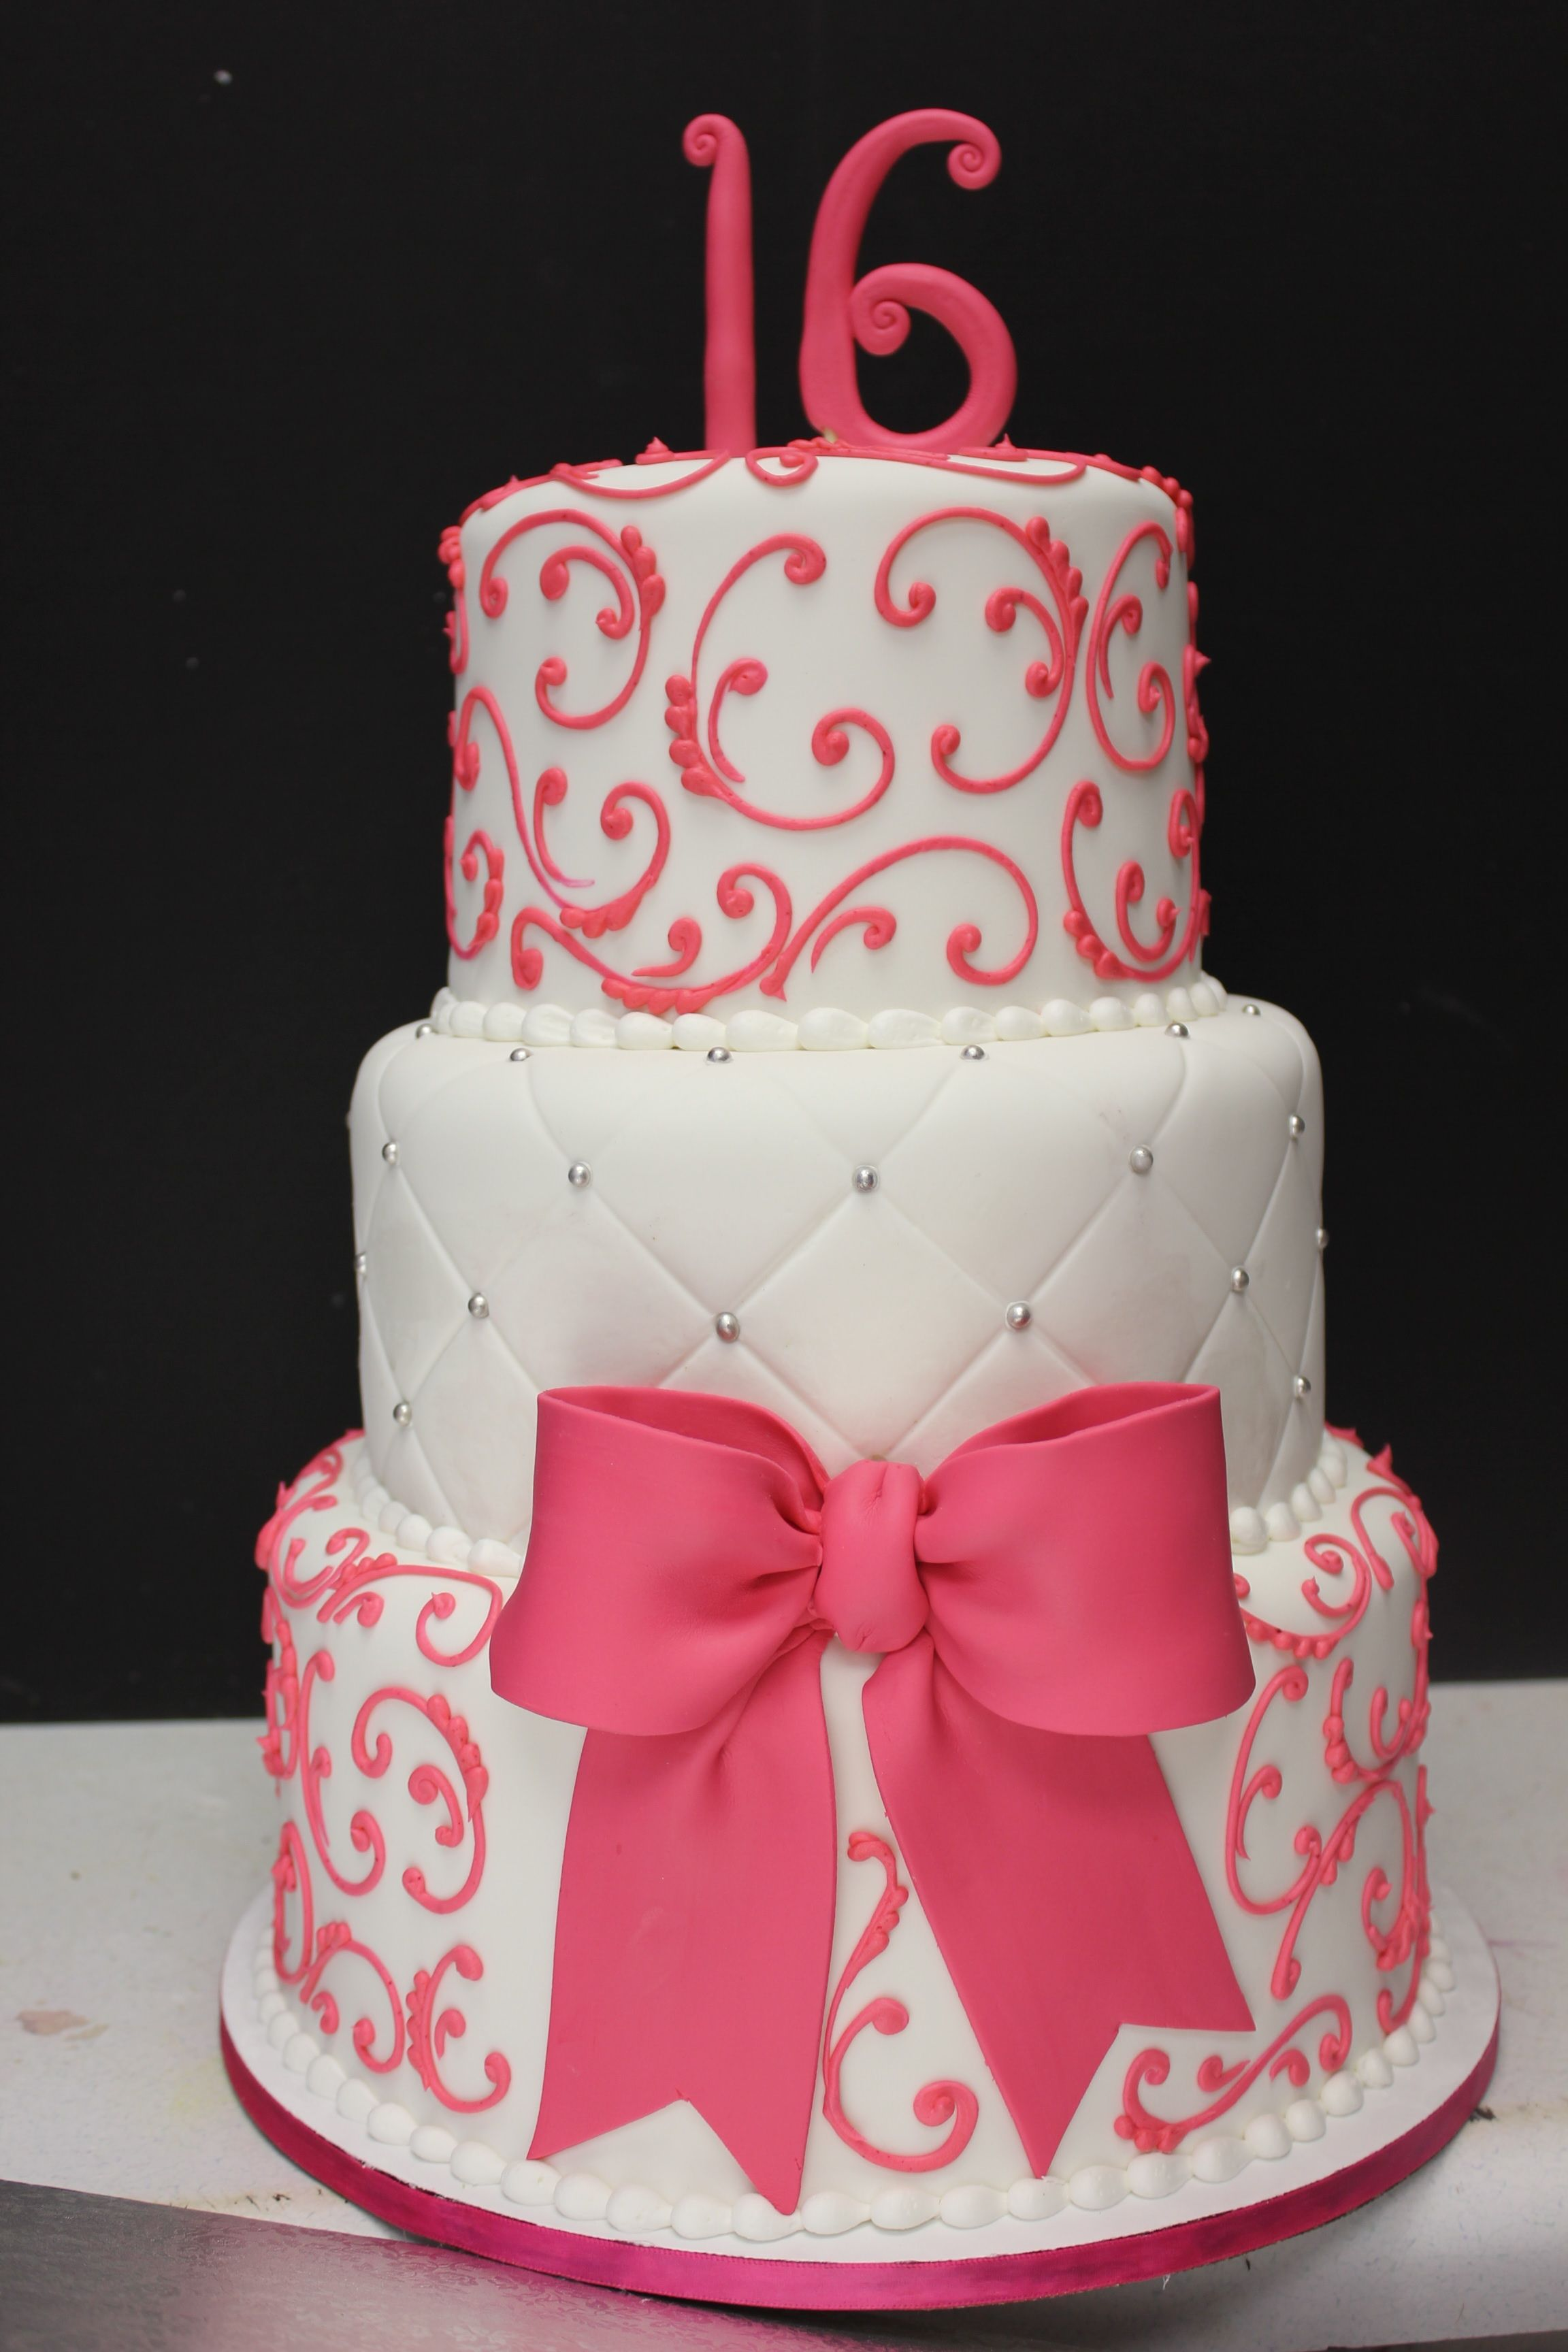 Sweet 16 Cake Maybe In Red And Black And Gold Instead Sweet Sixteen Cakes Sweet 16 Birthday Cake Tiered Cakes Birthday